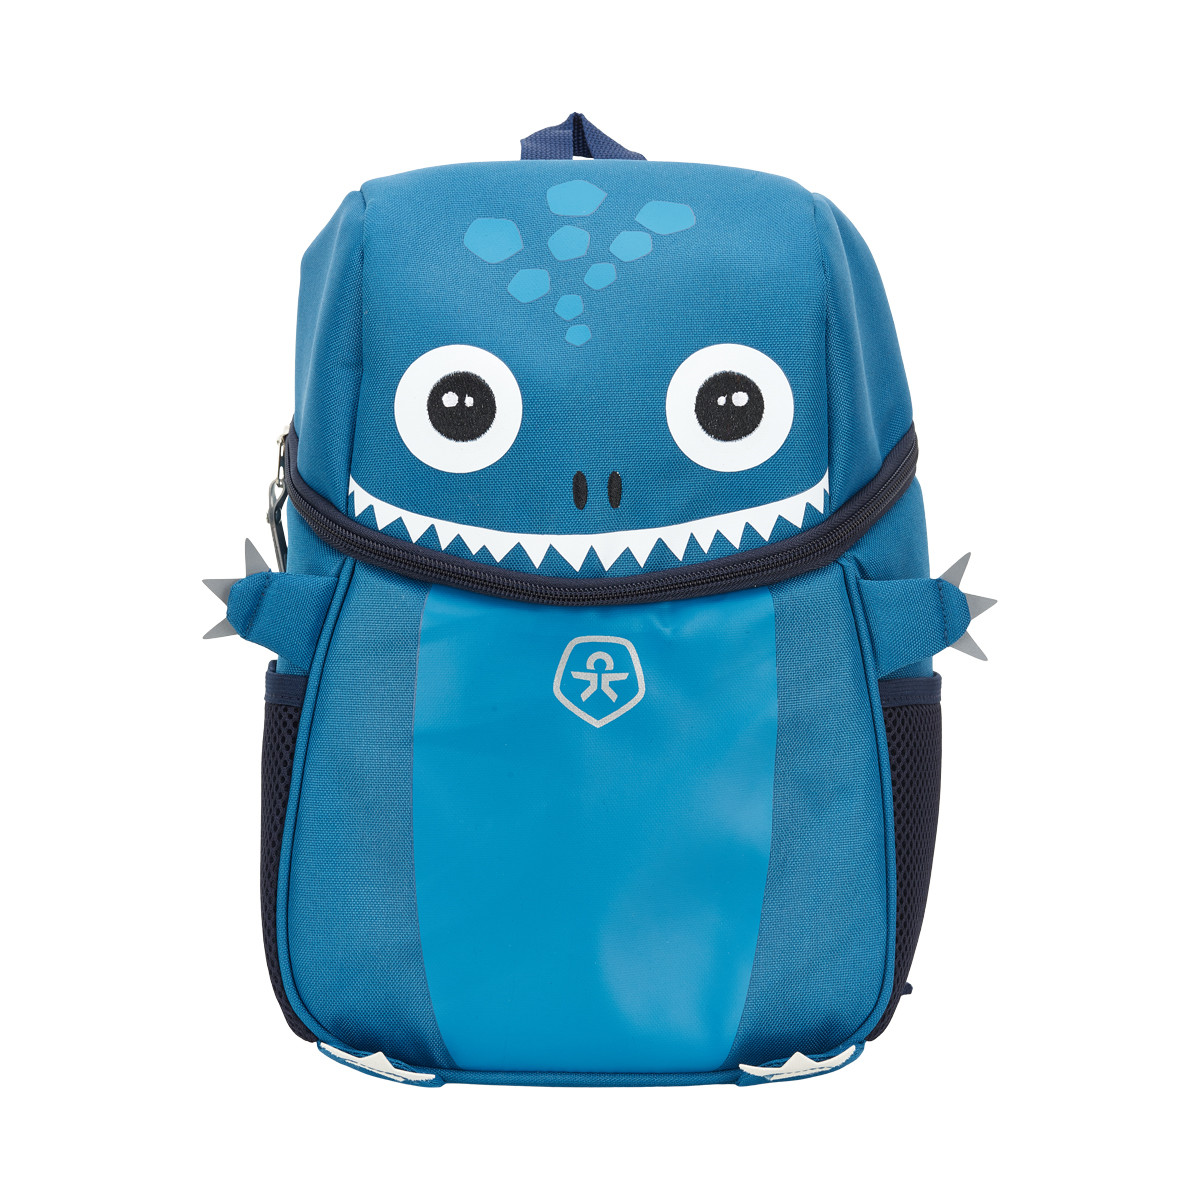 Color Kids Kico mini - Kinder mini Rucksack bluesaphire